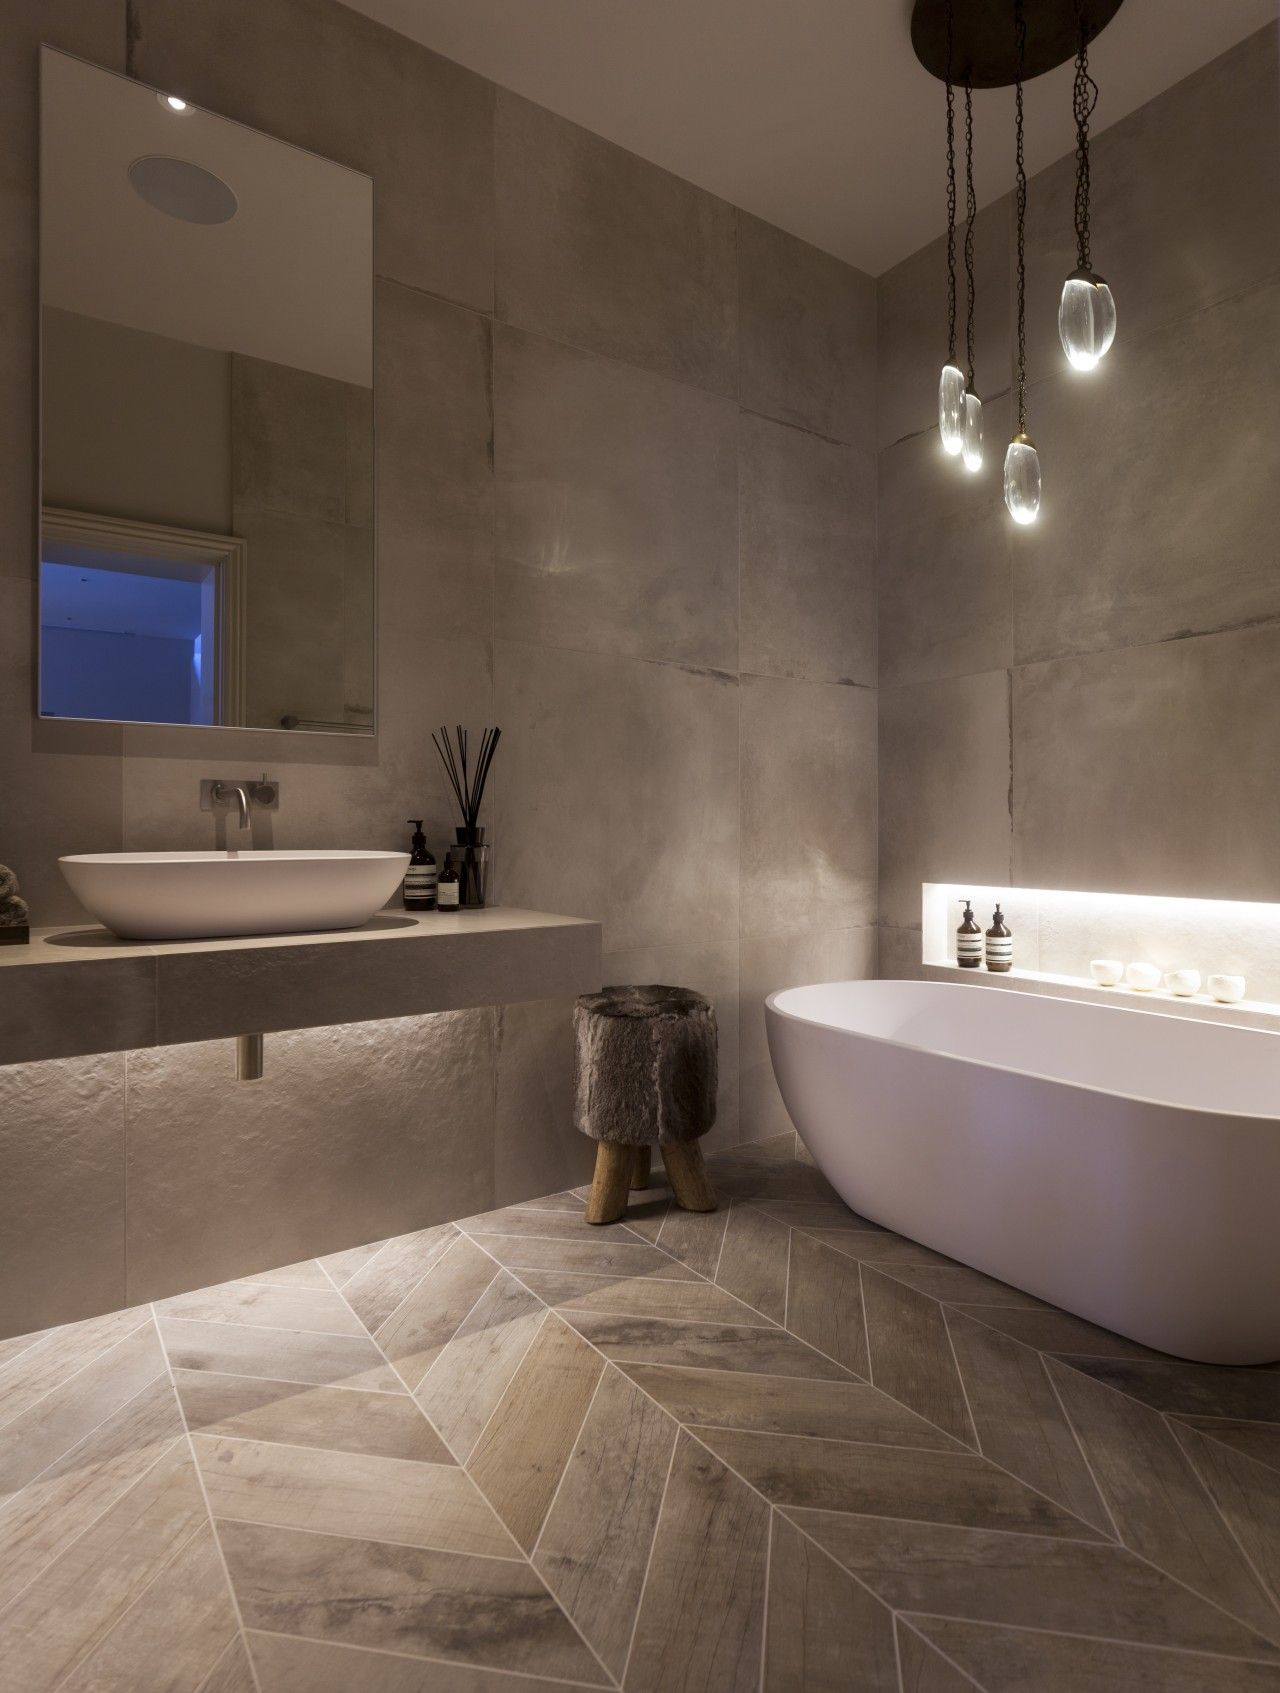 Private residence bath room janey butler interiors for Bathroom room design